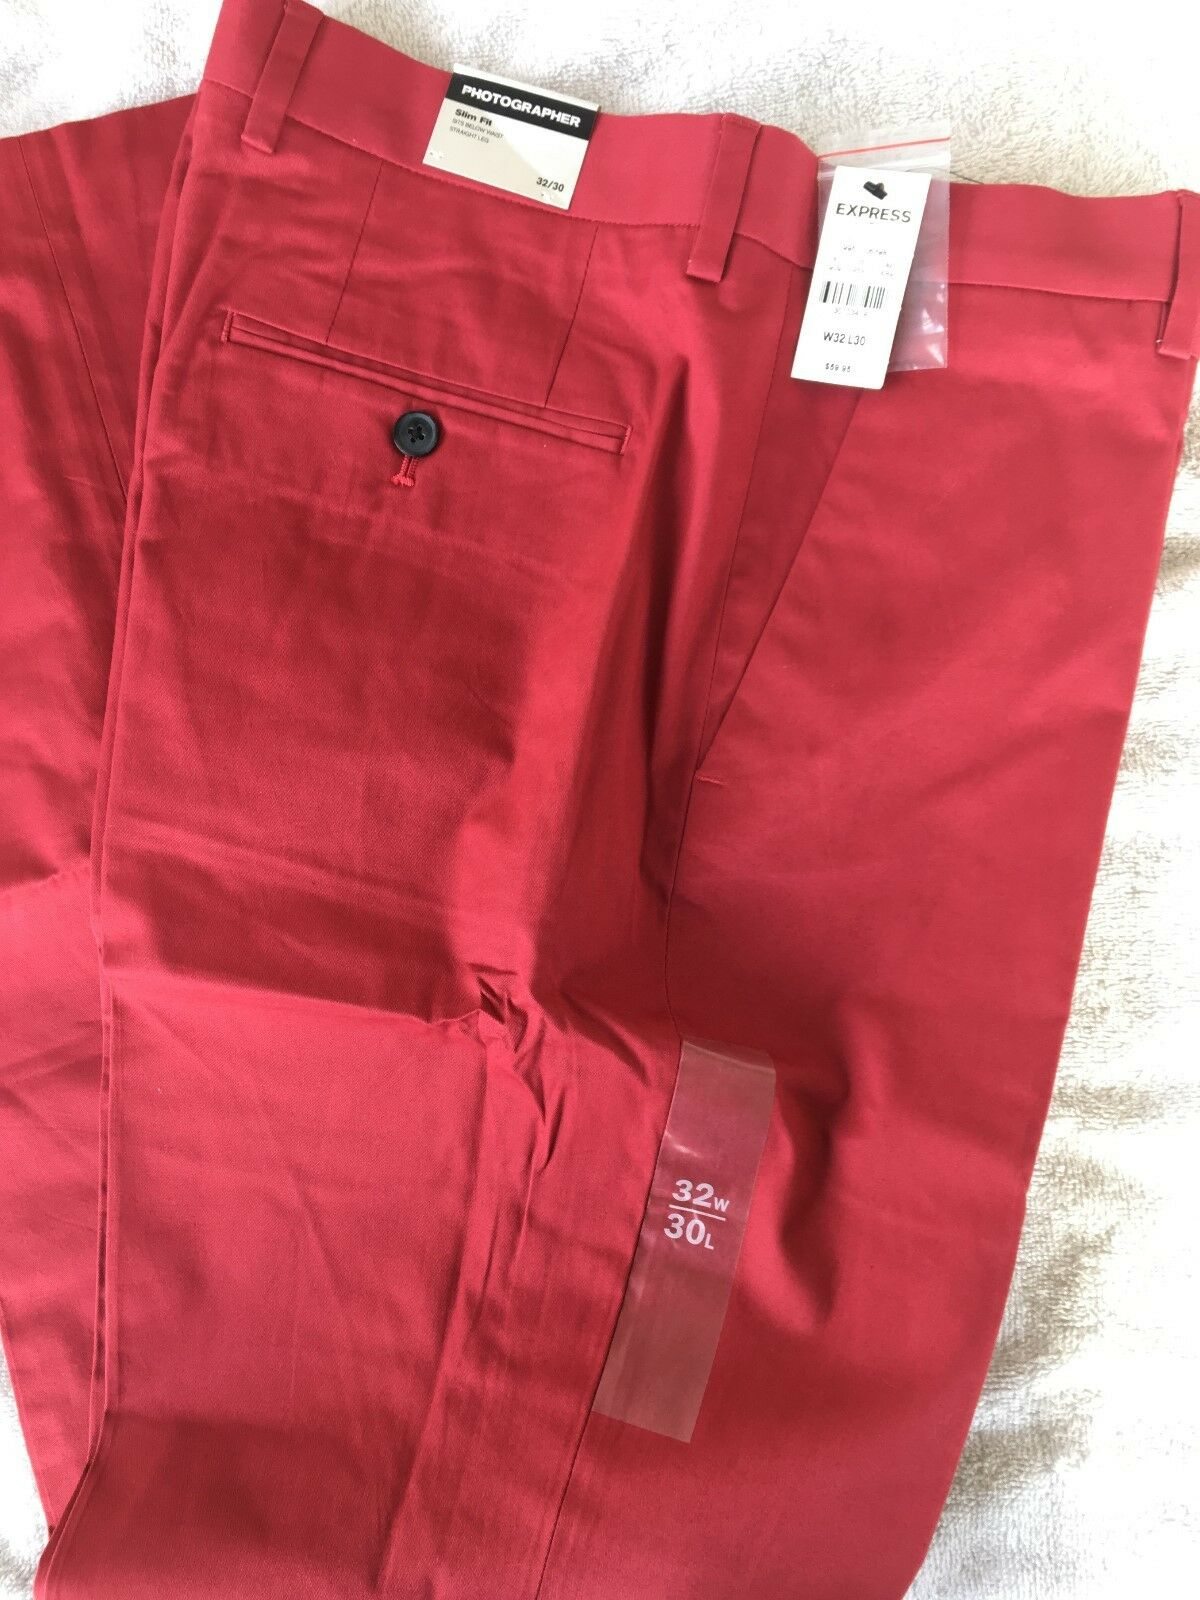 Express Photographer Pants Mens - 32x30 - Coral Red - Slim Fit - NWT